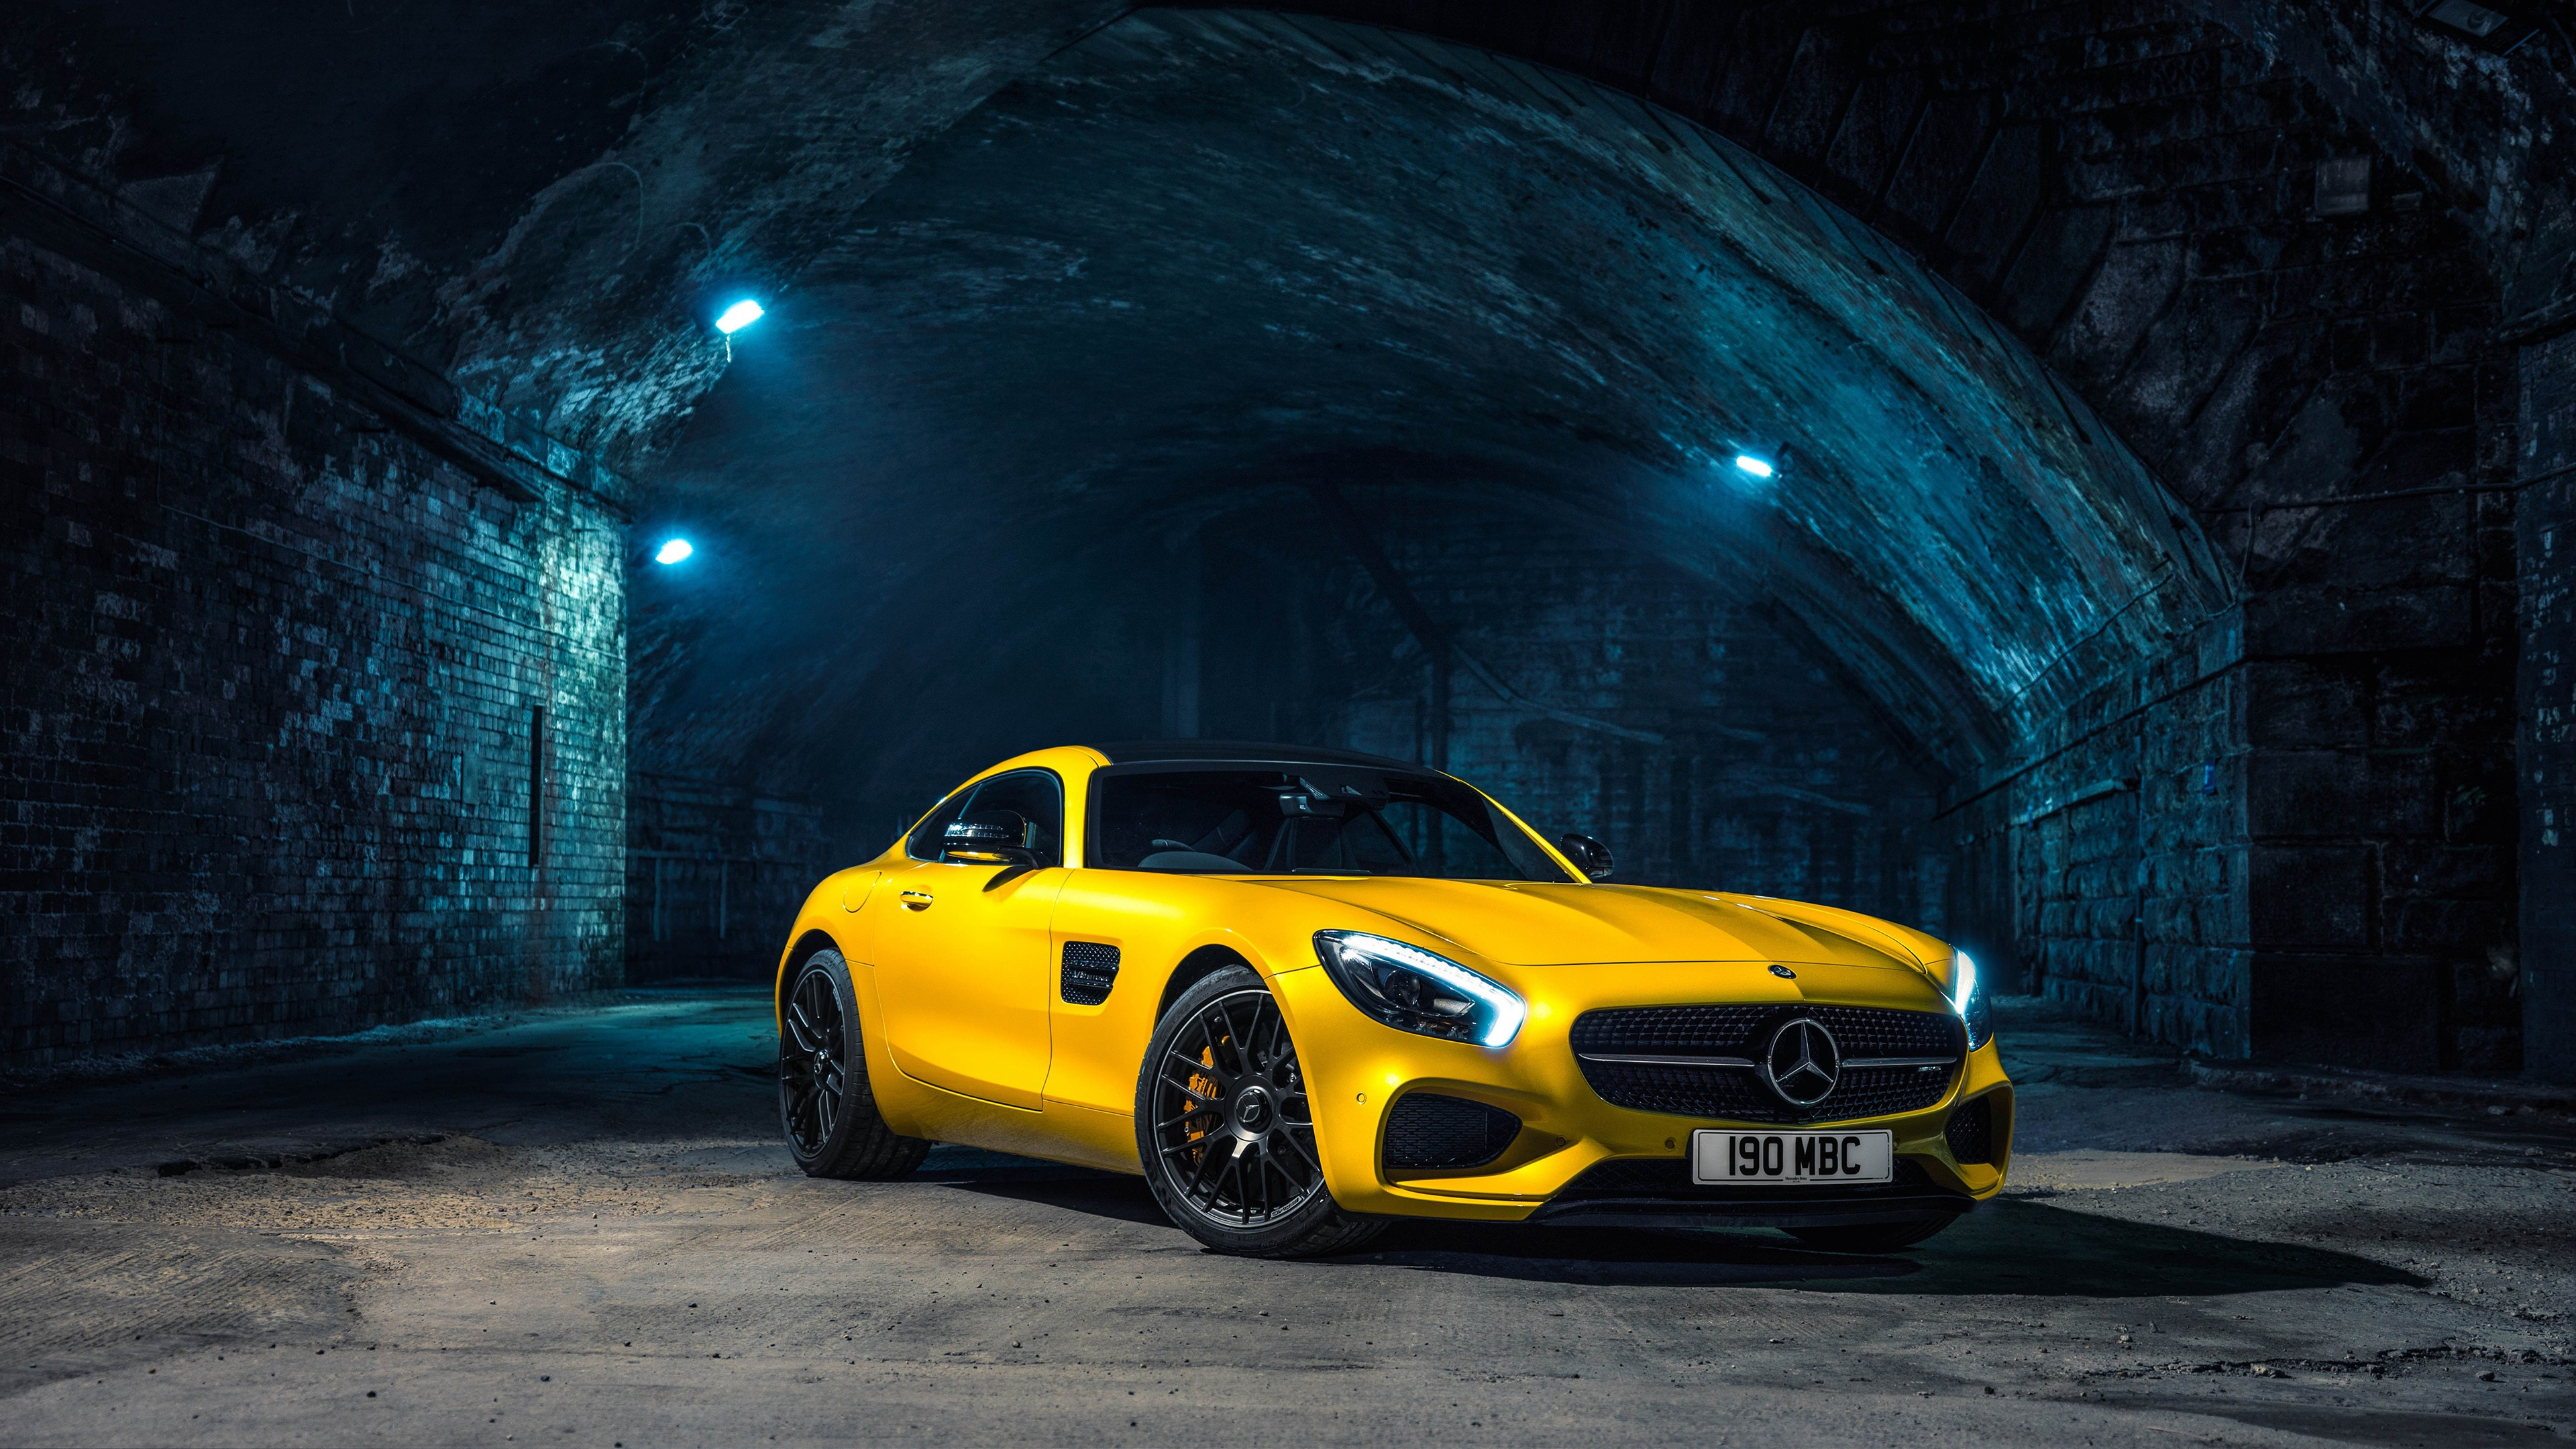 Cars Wallpapers: 2015 Mercedes AMG GT S Wallpaper